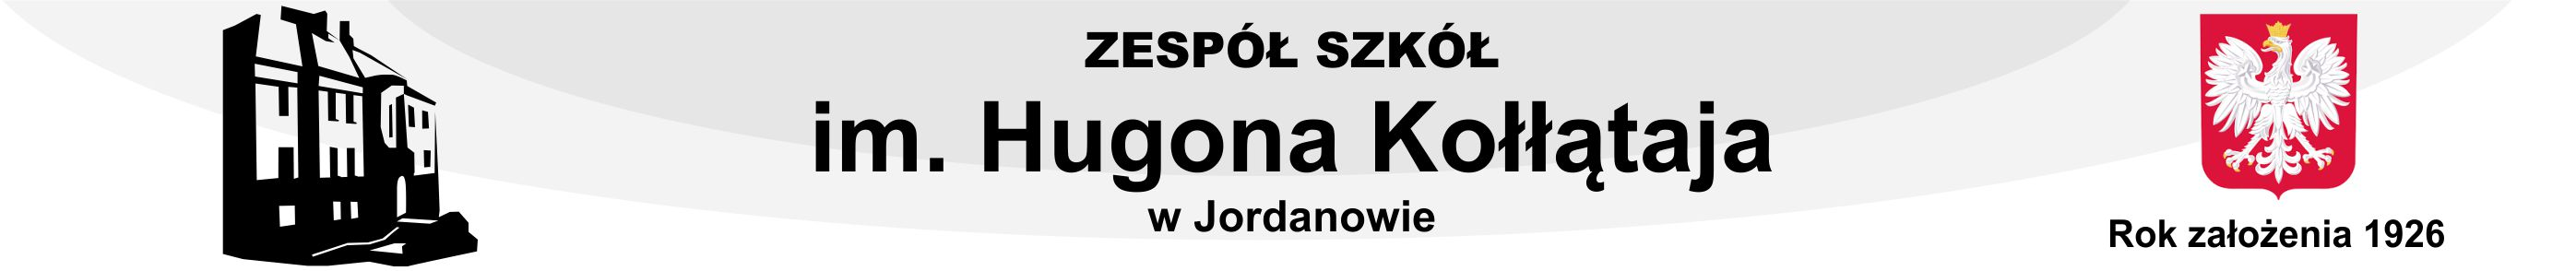 Zespół Szkół im. Hugona Kołłątaja w Jordanowie